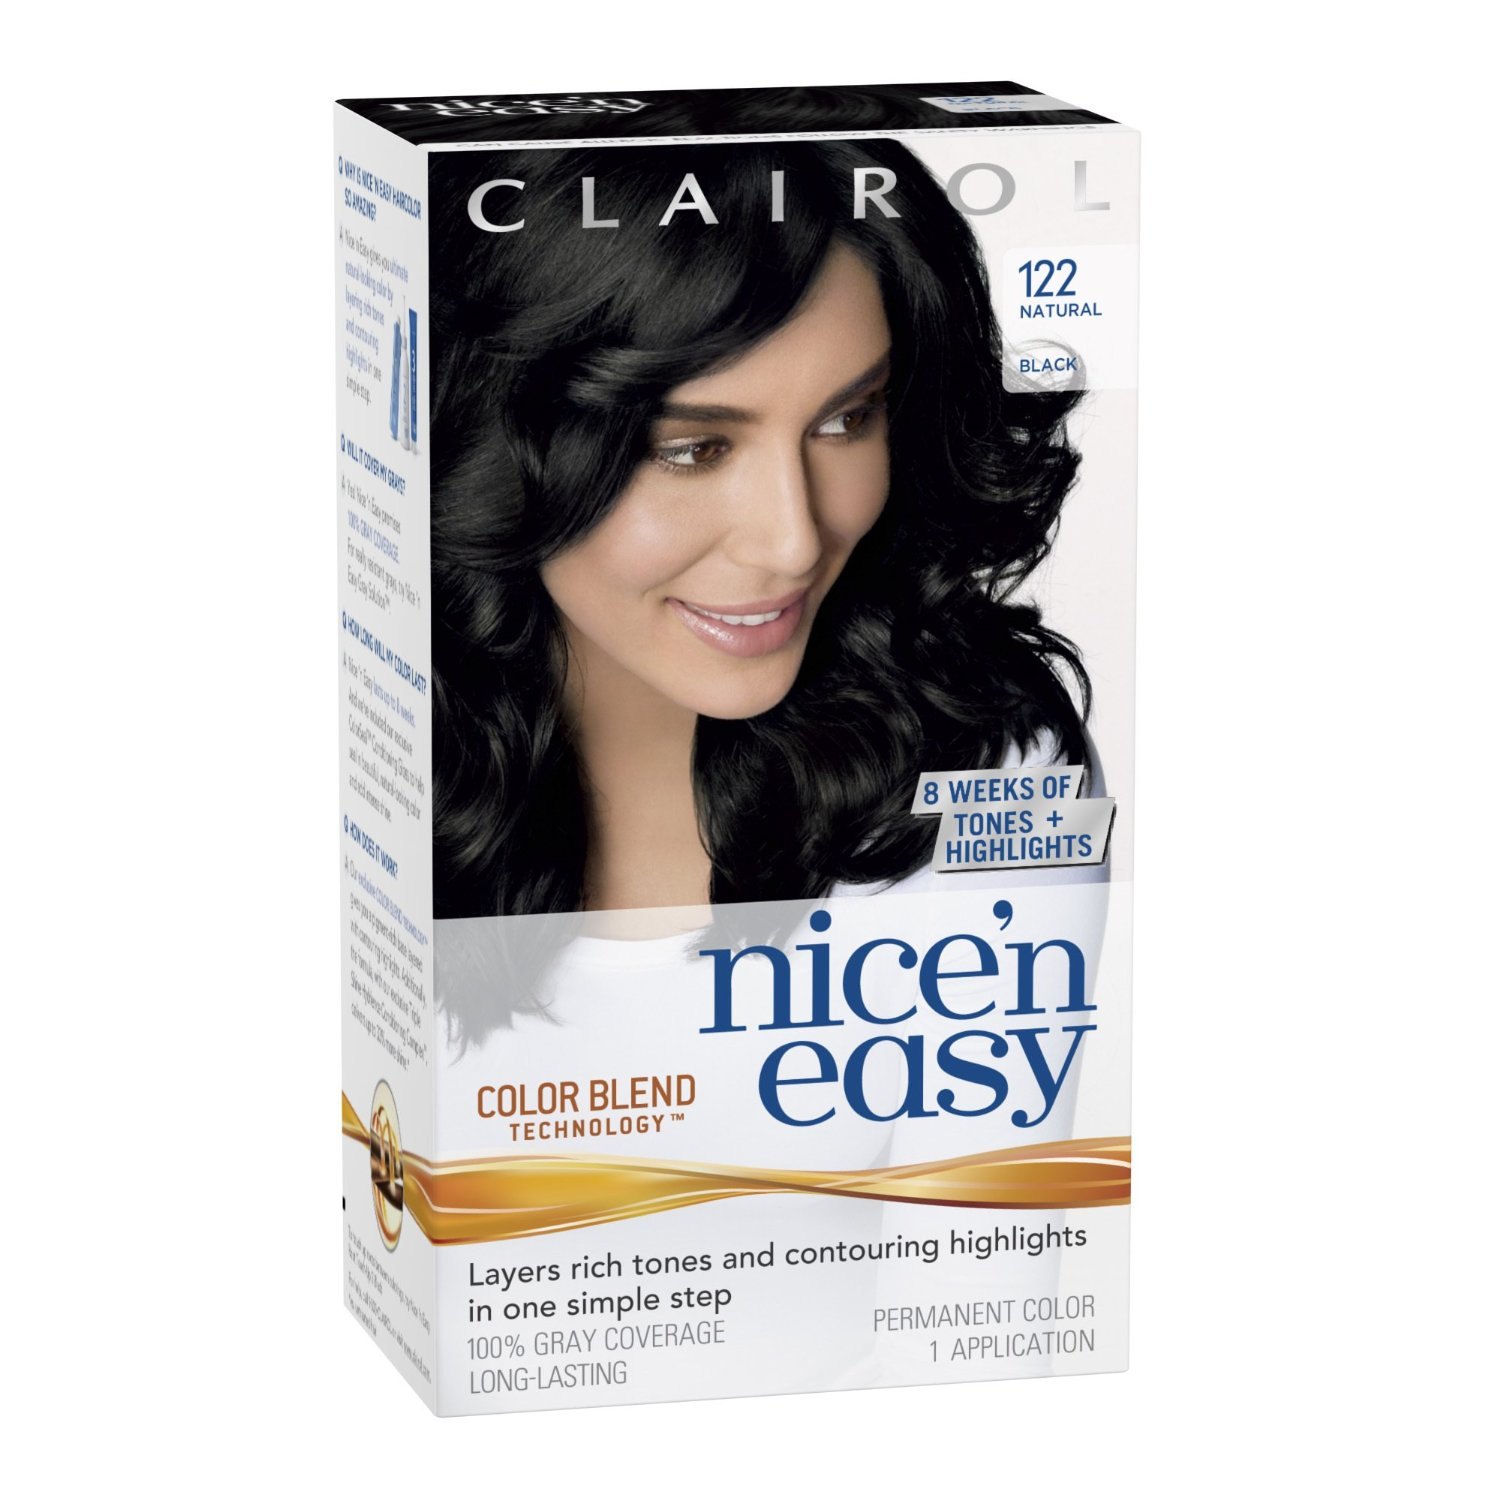 20 Ms Clairol Jokes Pictures And Ideas On Weric